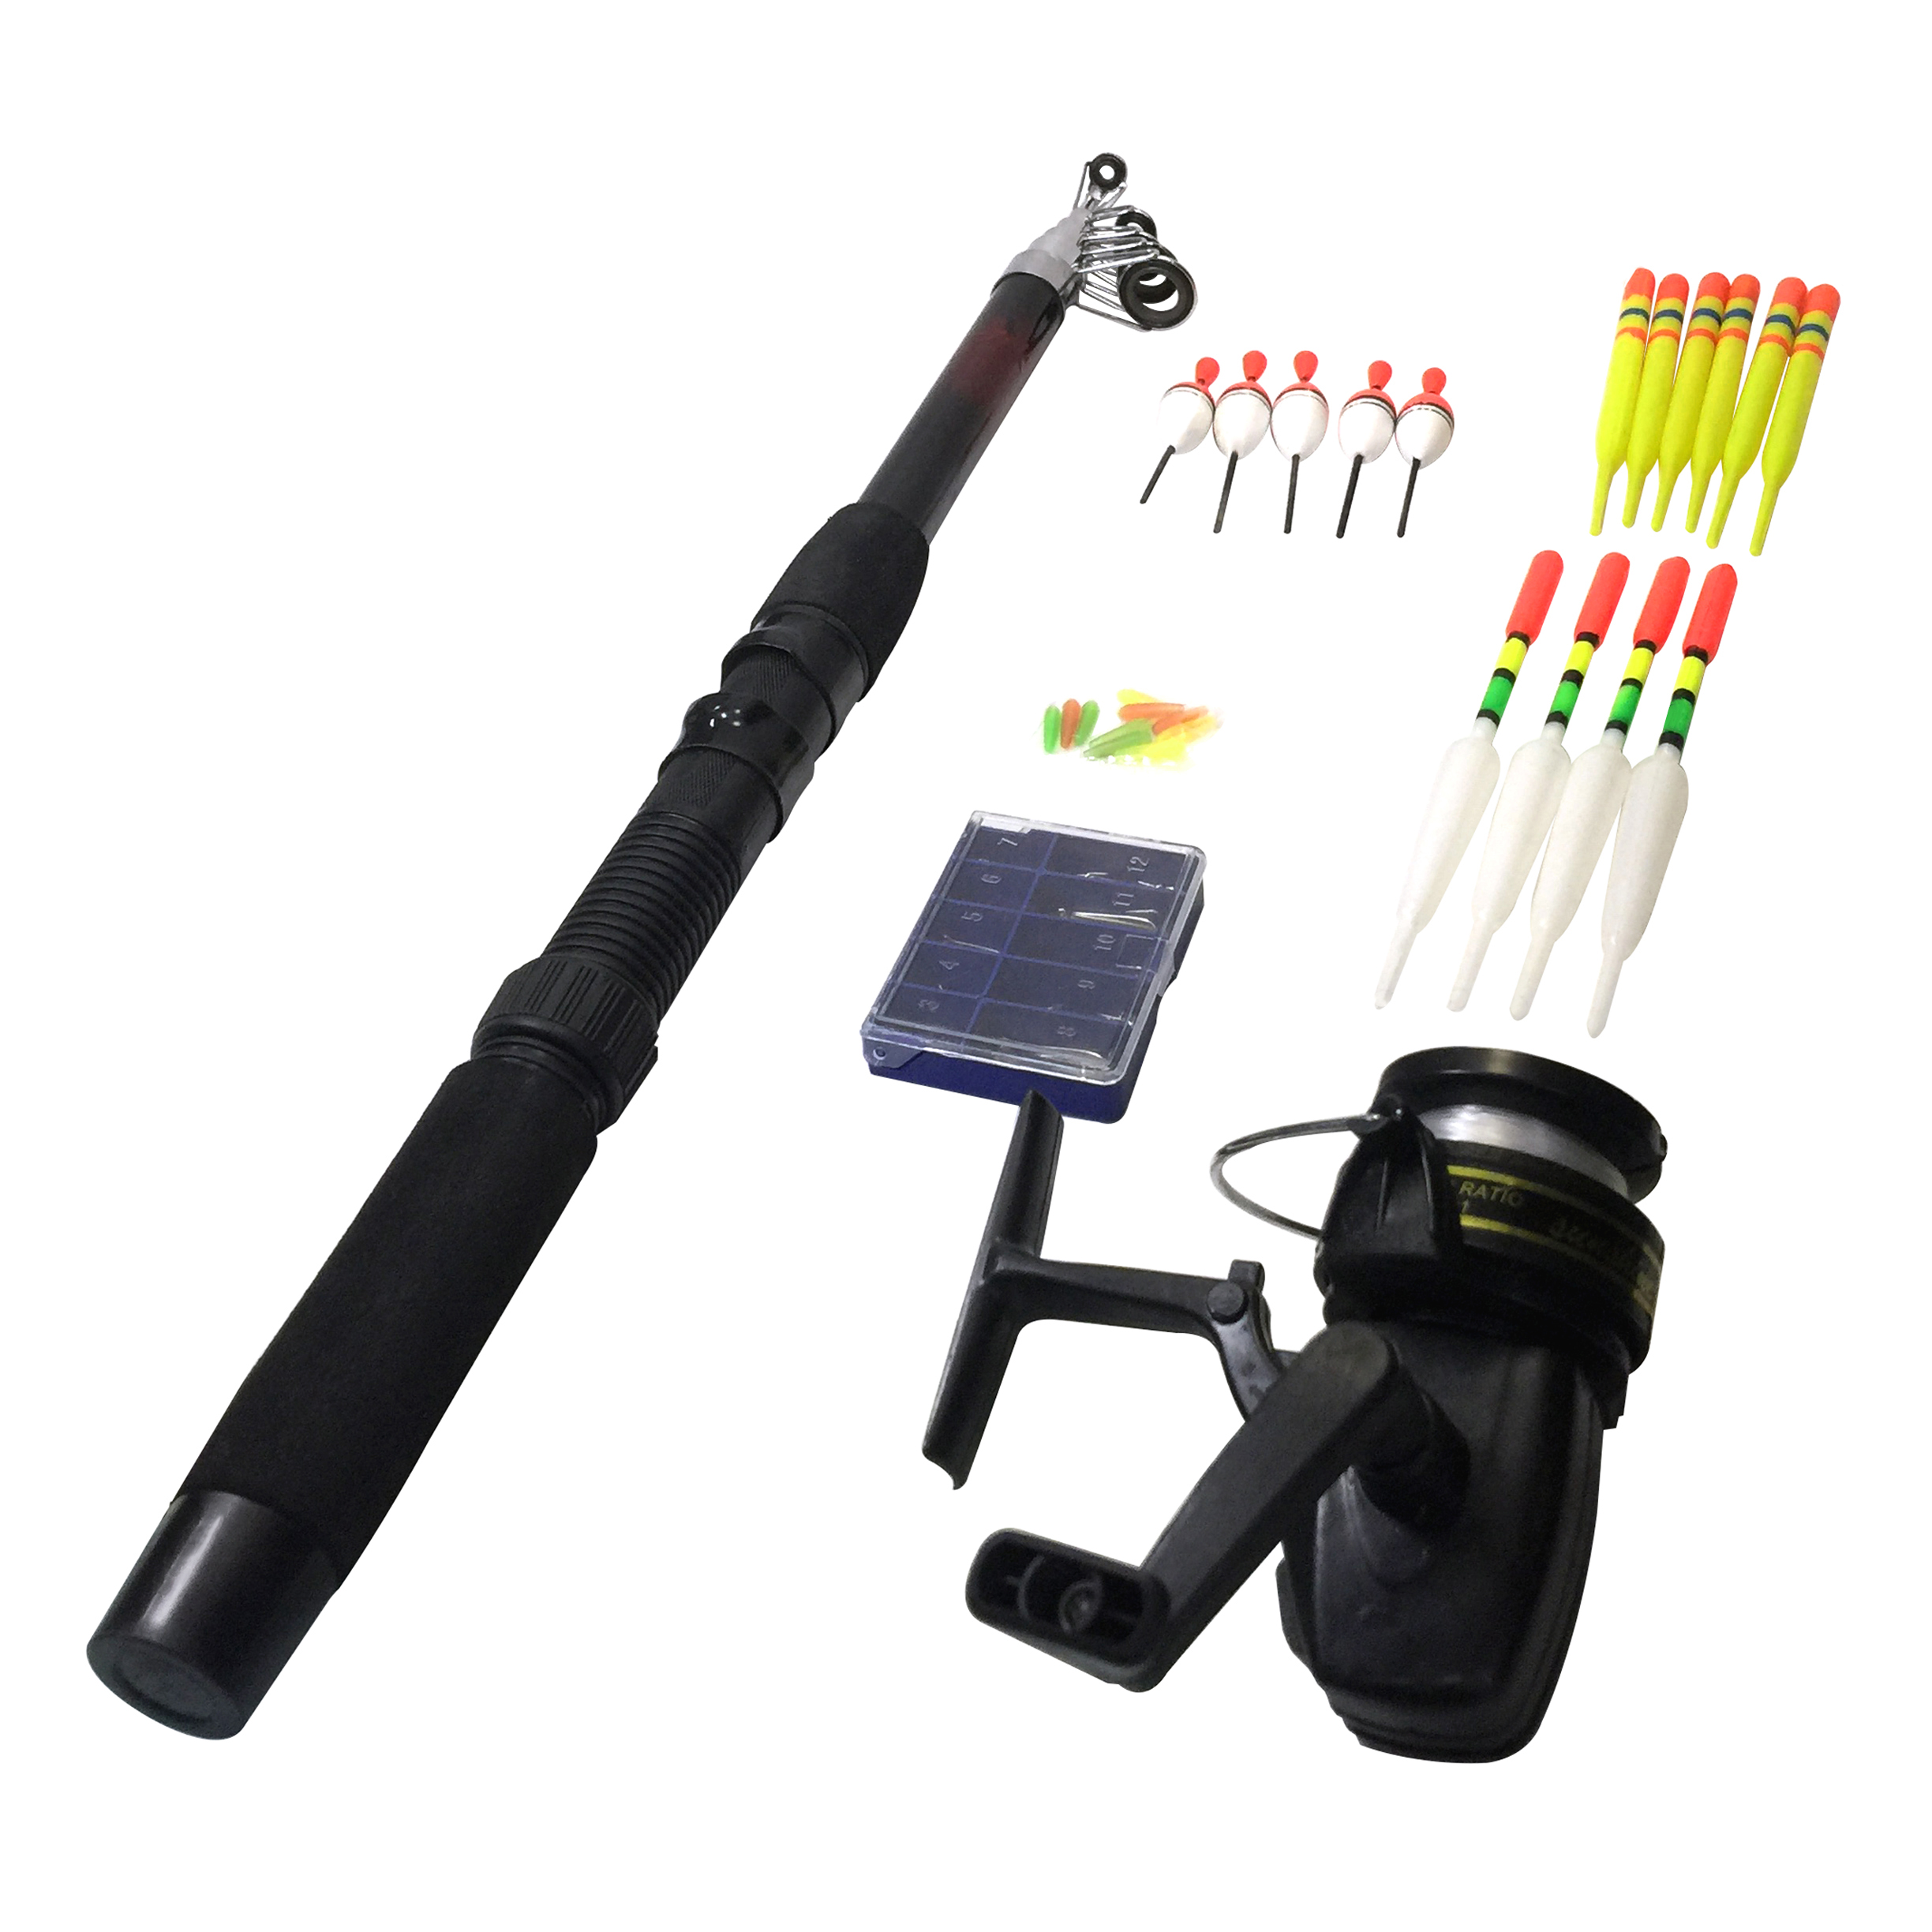 Cheap new Spinning Telescopic <strong>Fishing</strong> Rod and reel Combo Kit Set with <strong>Fishing</strong> floats and hooks <strong>fishing</strong> combo blister package